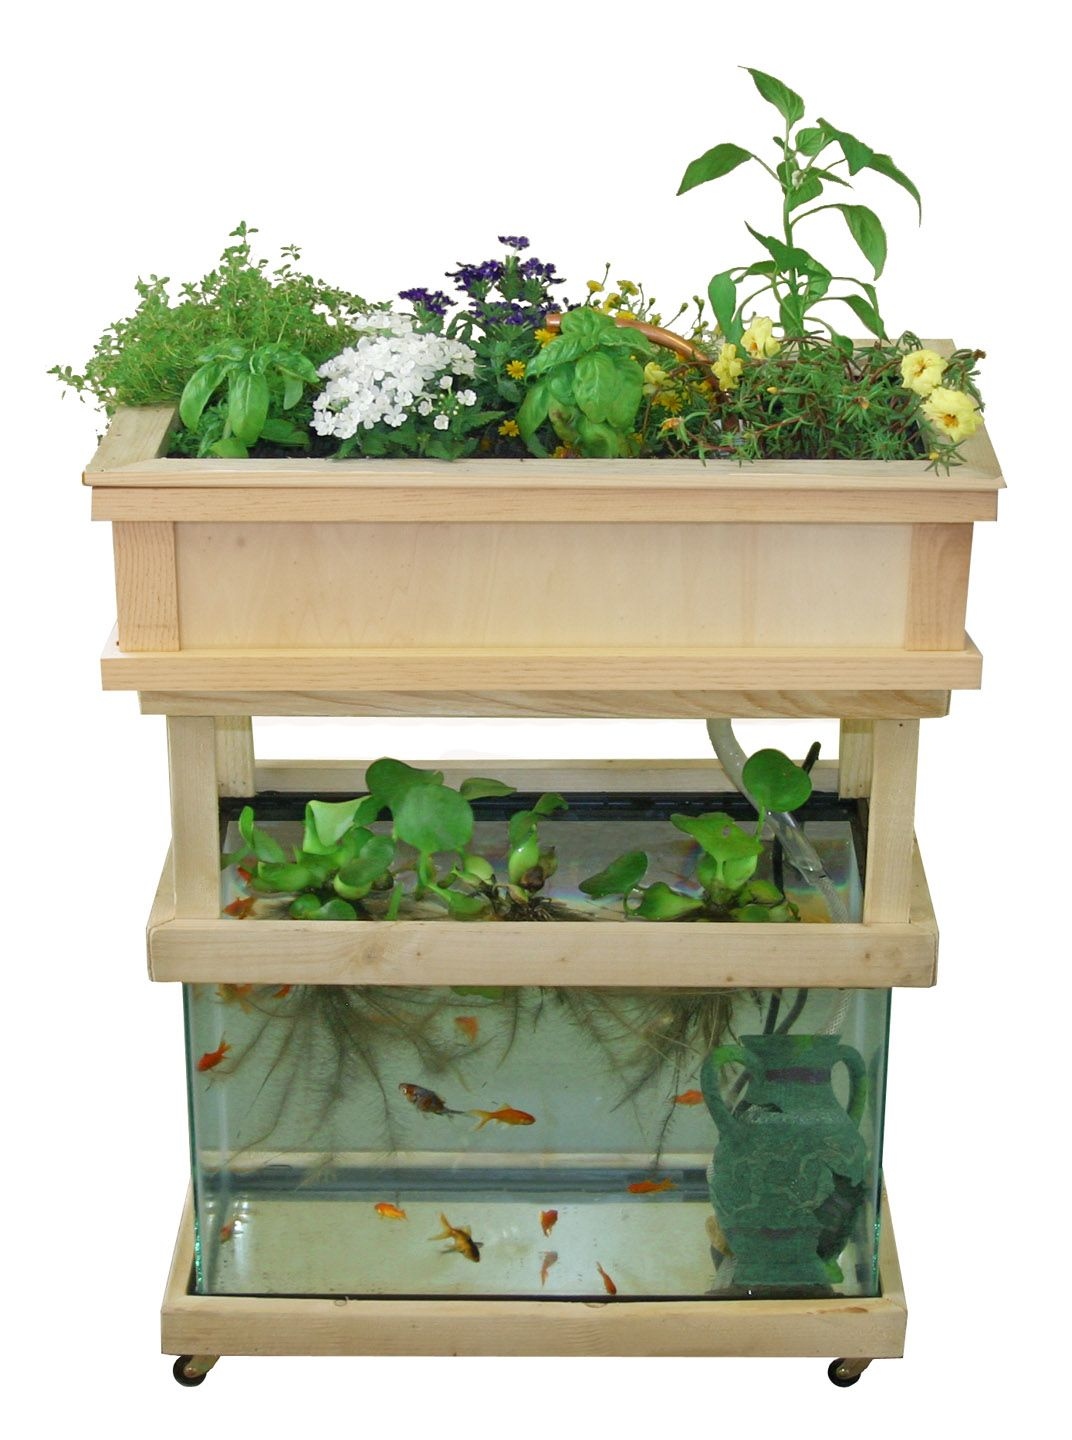 The Spotless Garden; New York Times Aquaponics Features Farm In A Box